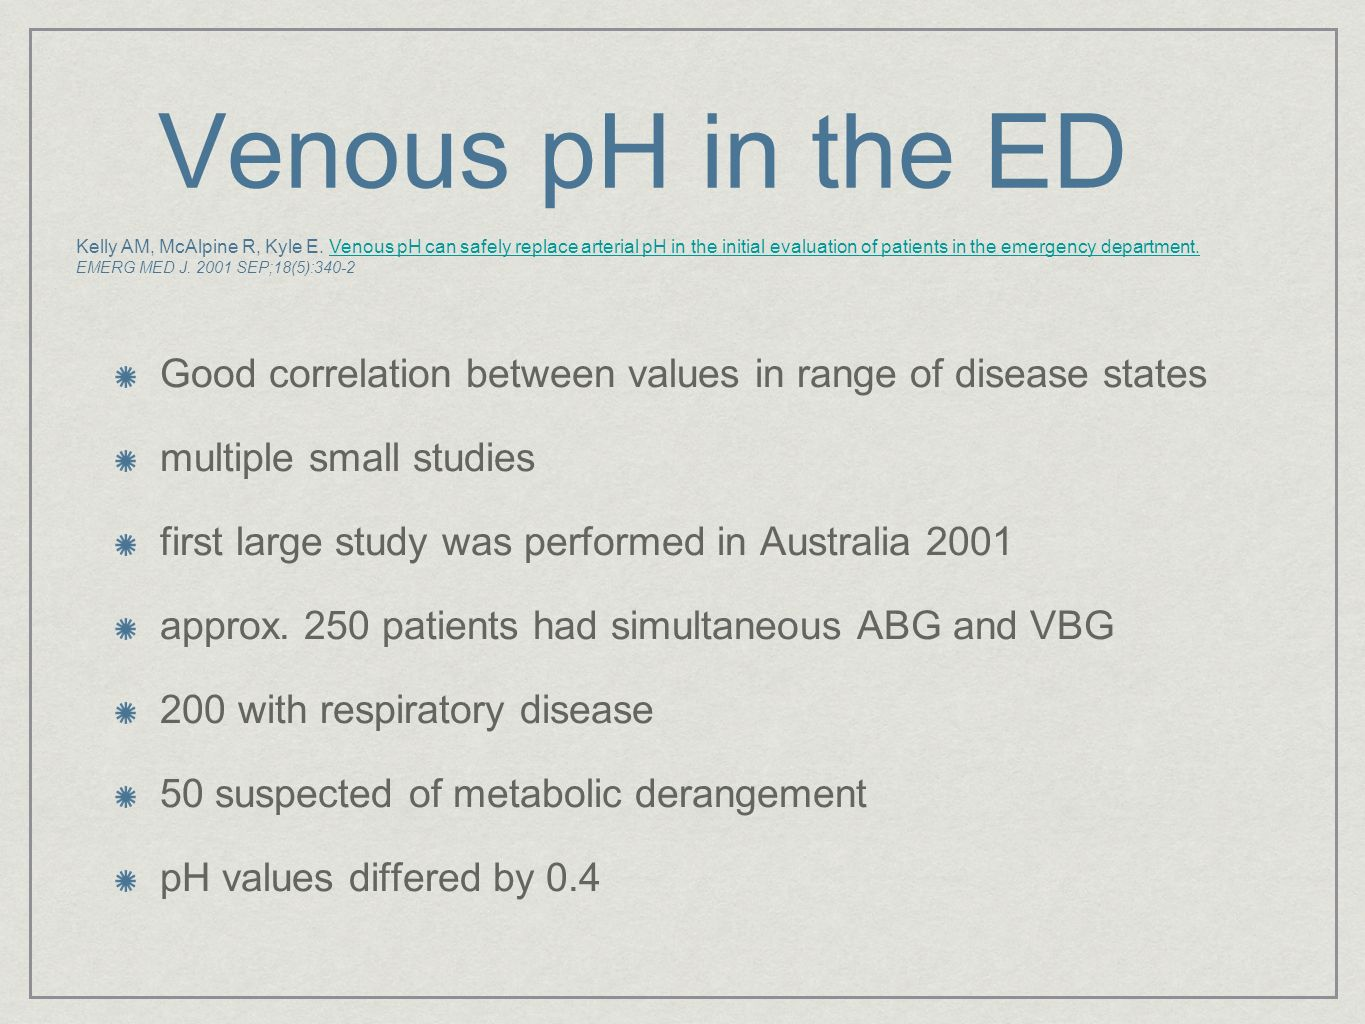 Venous pH in the ED Good correlation between values in range of disease states multiple small studies first large study was performed in Australia 200